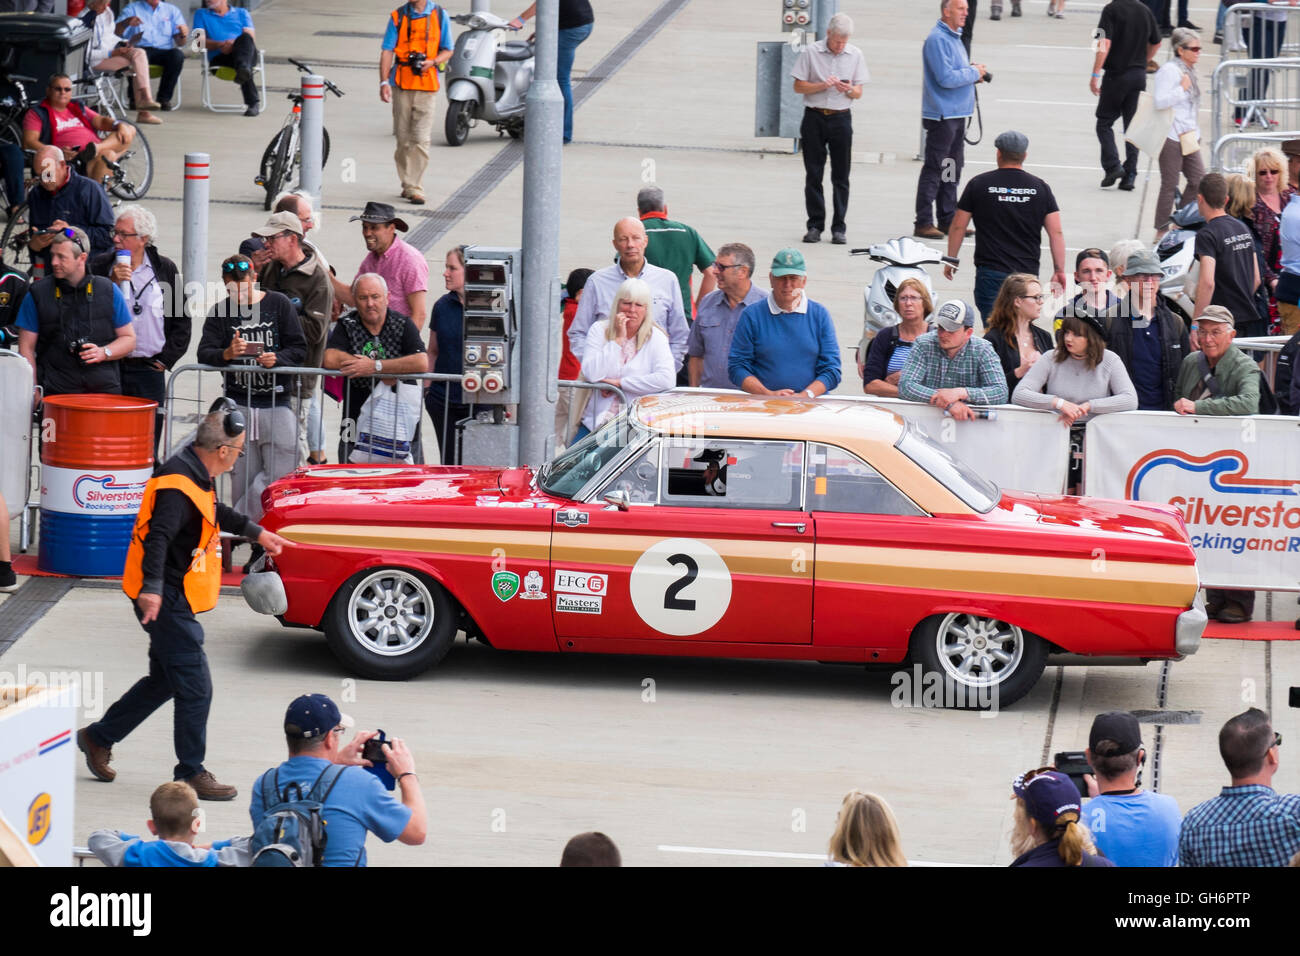 Leo Voyazides, Ford Falcon, Pre-66 Big Engined Touring Cars, 2016 Silverstone Classic event, UK - Stock Image